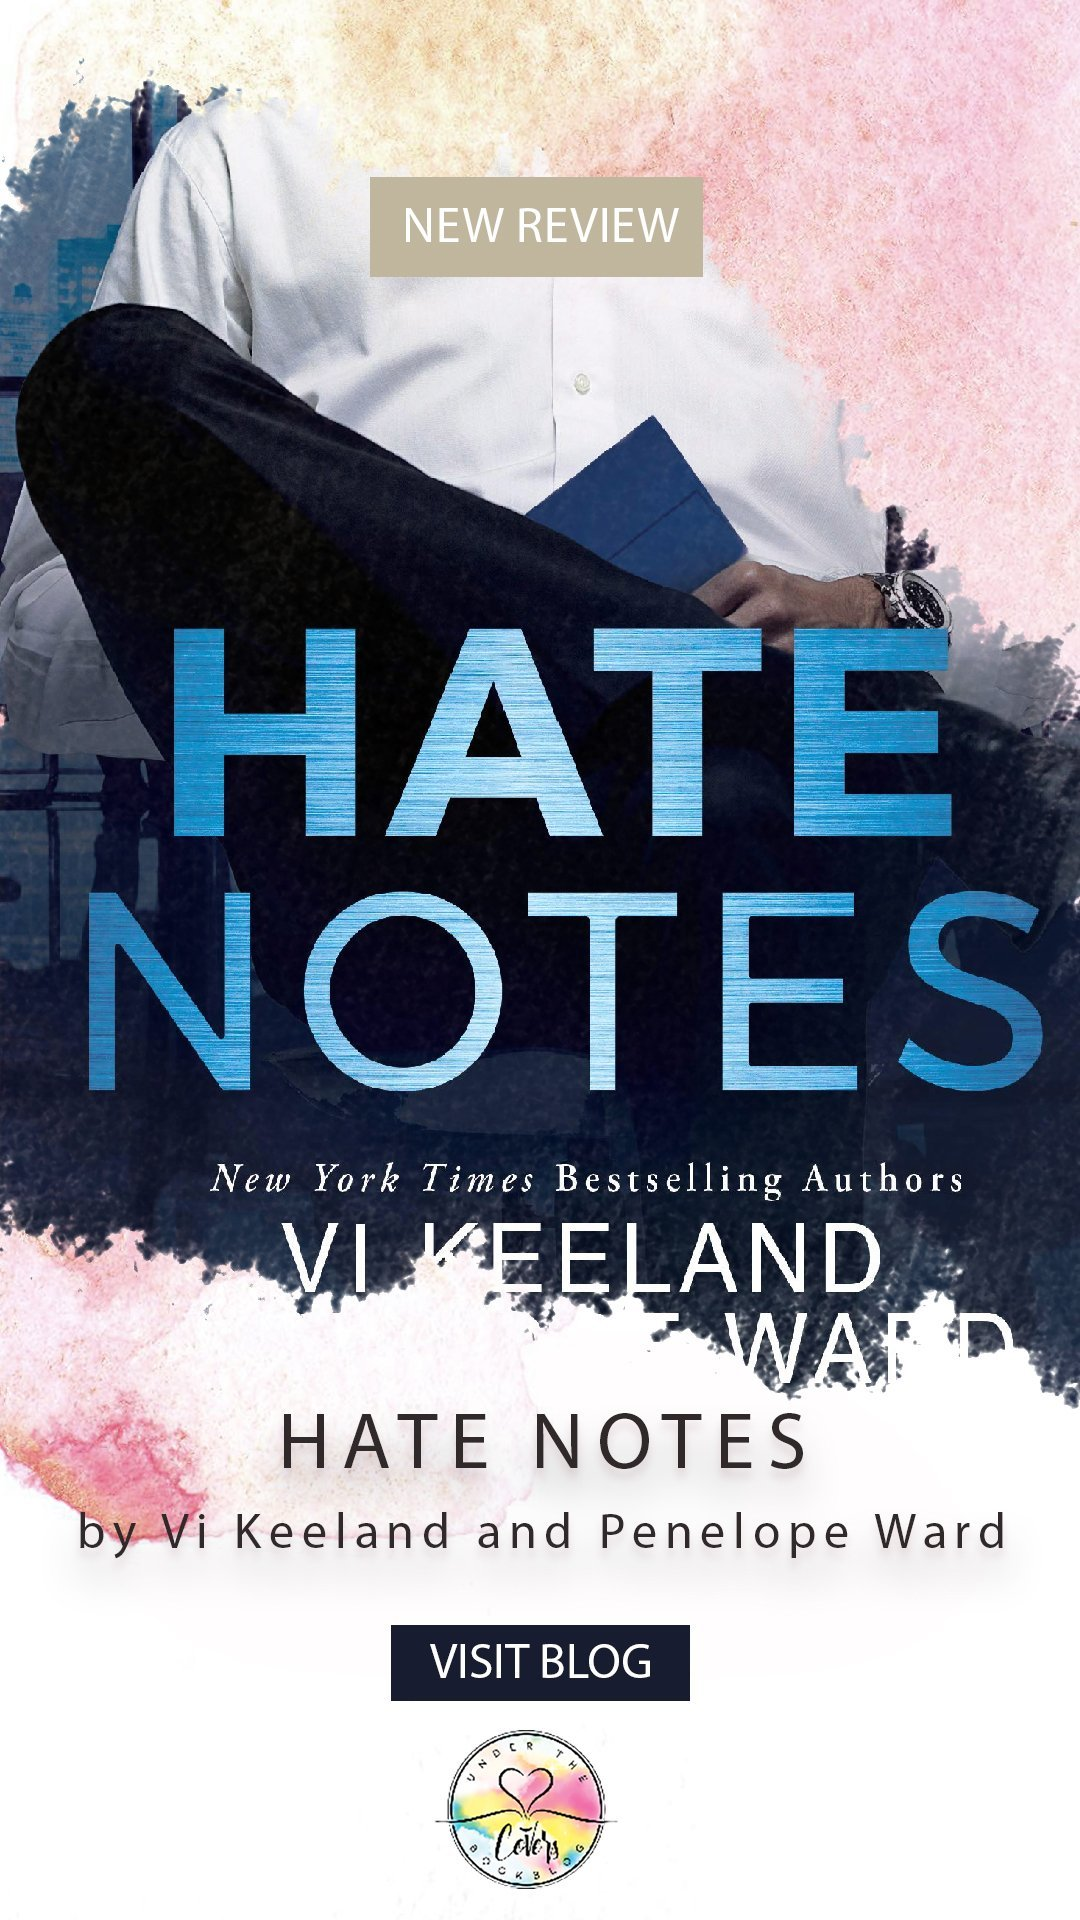 ARC Review: Hate Notes by Vi Keeland and Penelope Ward